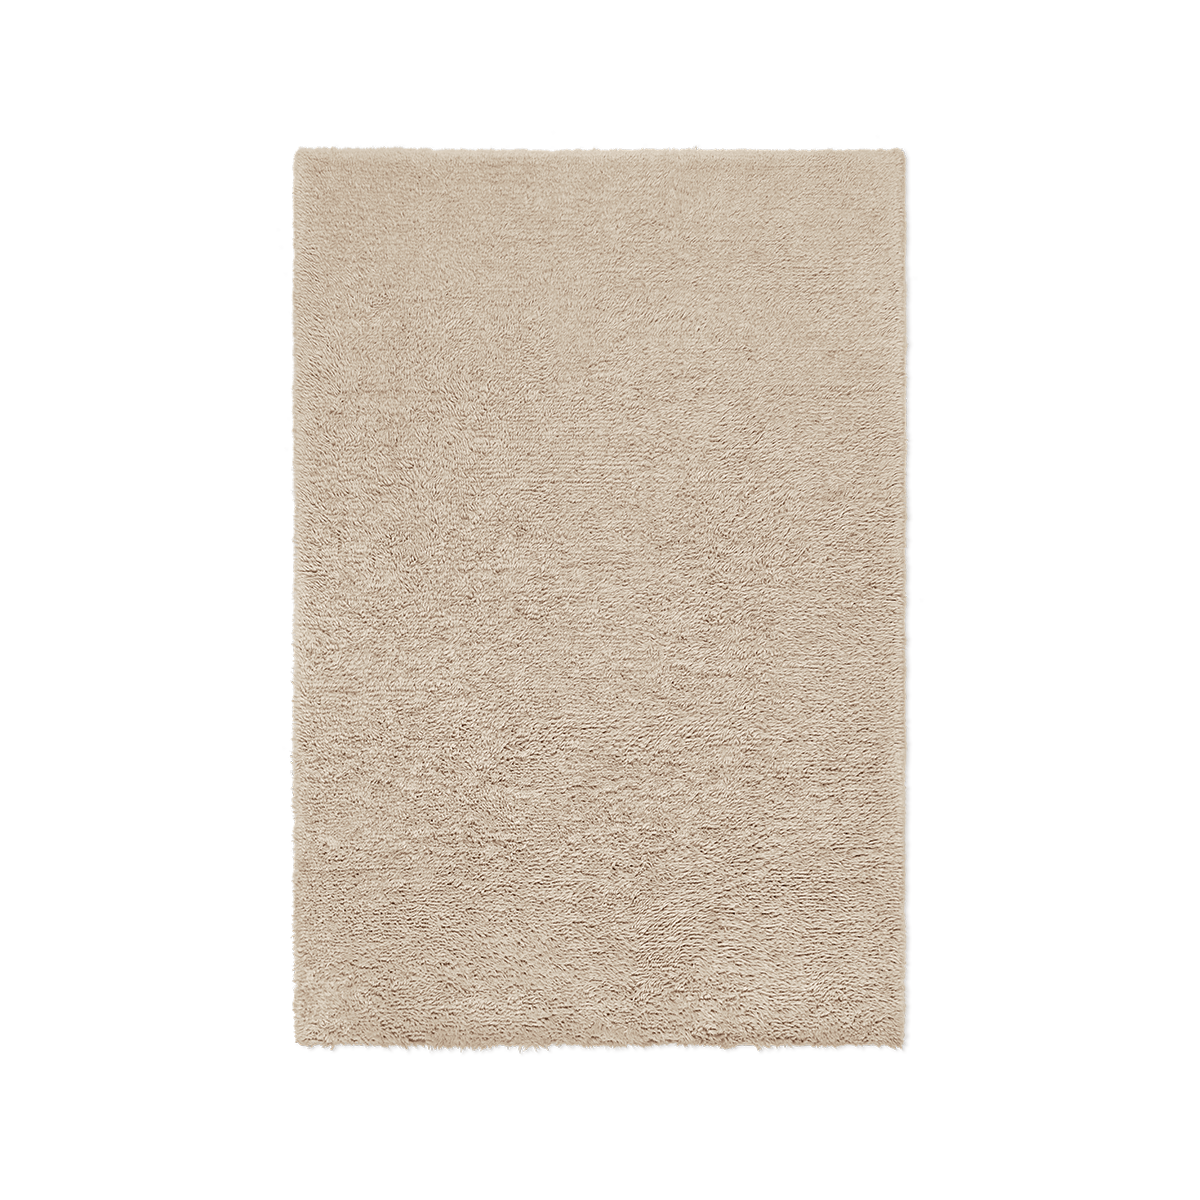 Product image of Fields wool rug in sand